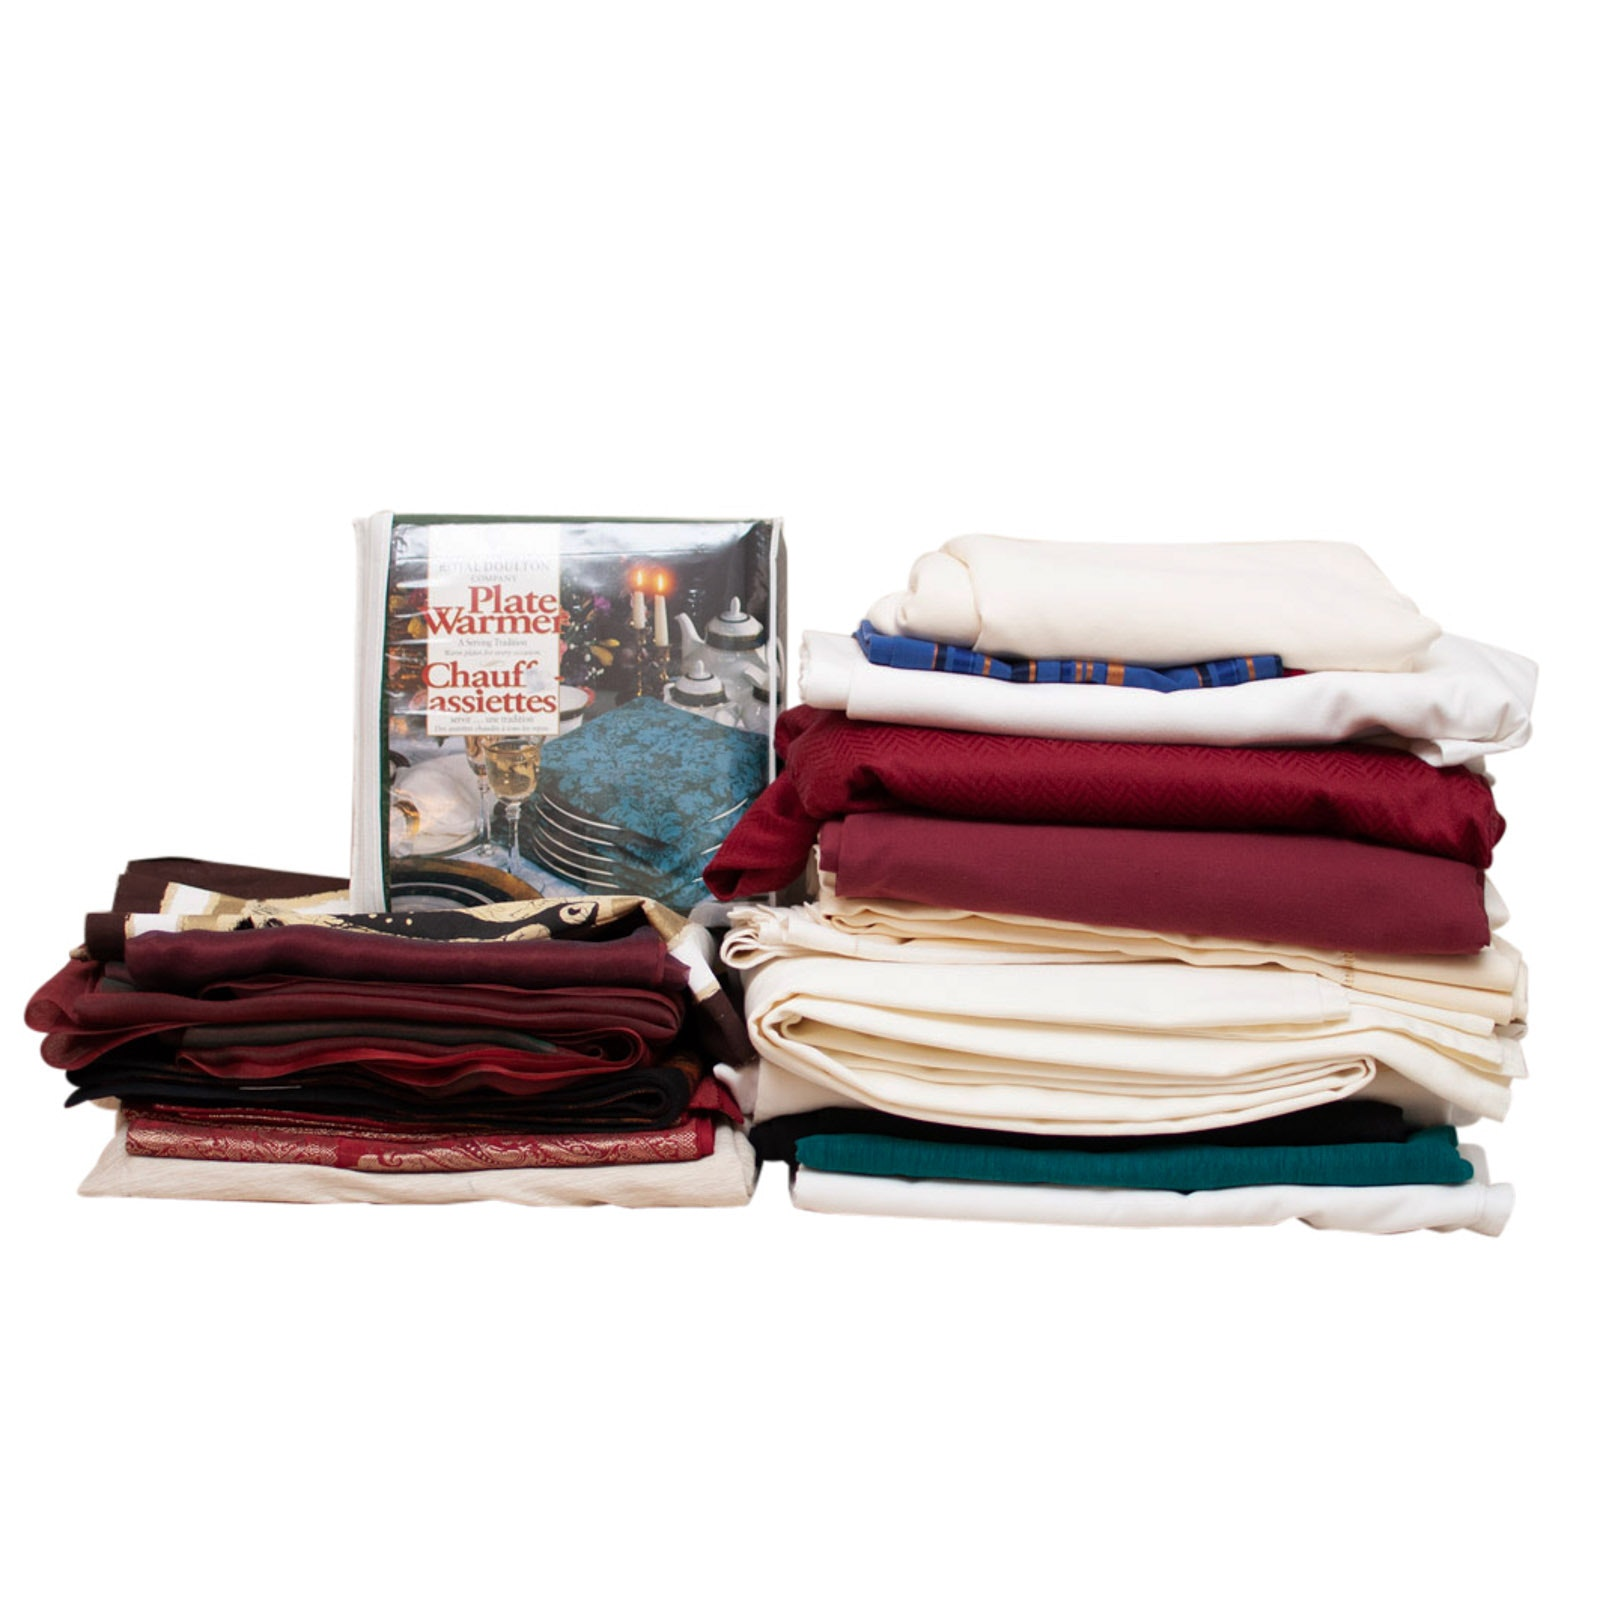 Table Runners and Tablecloths Including Crate & Barrel, Sur La Table and More